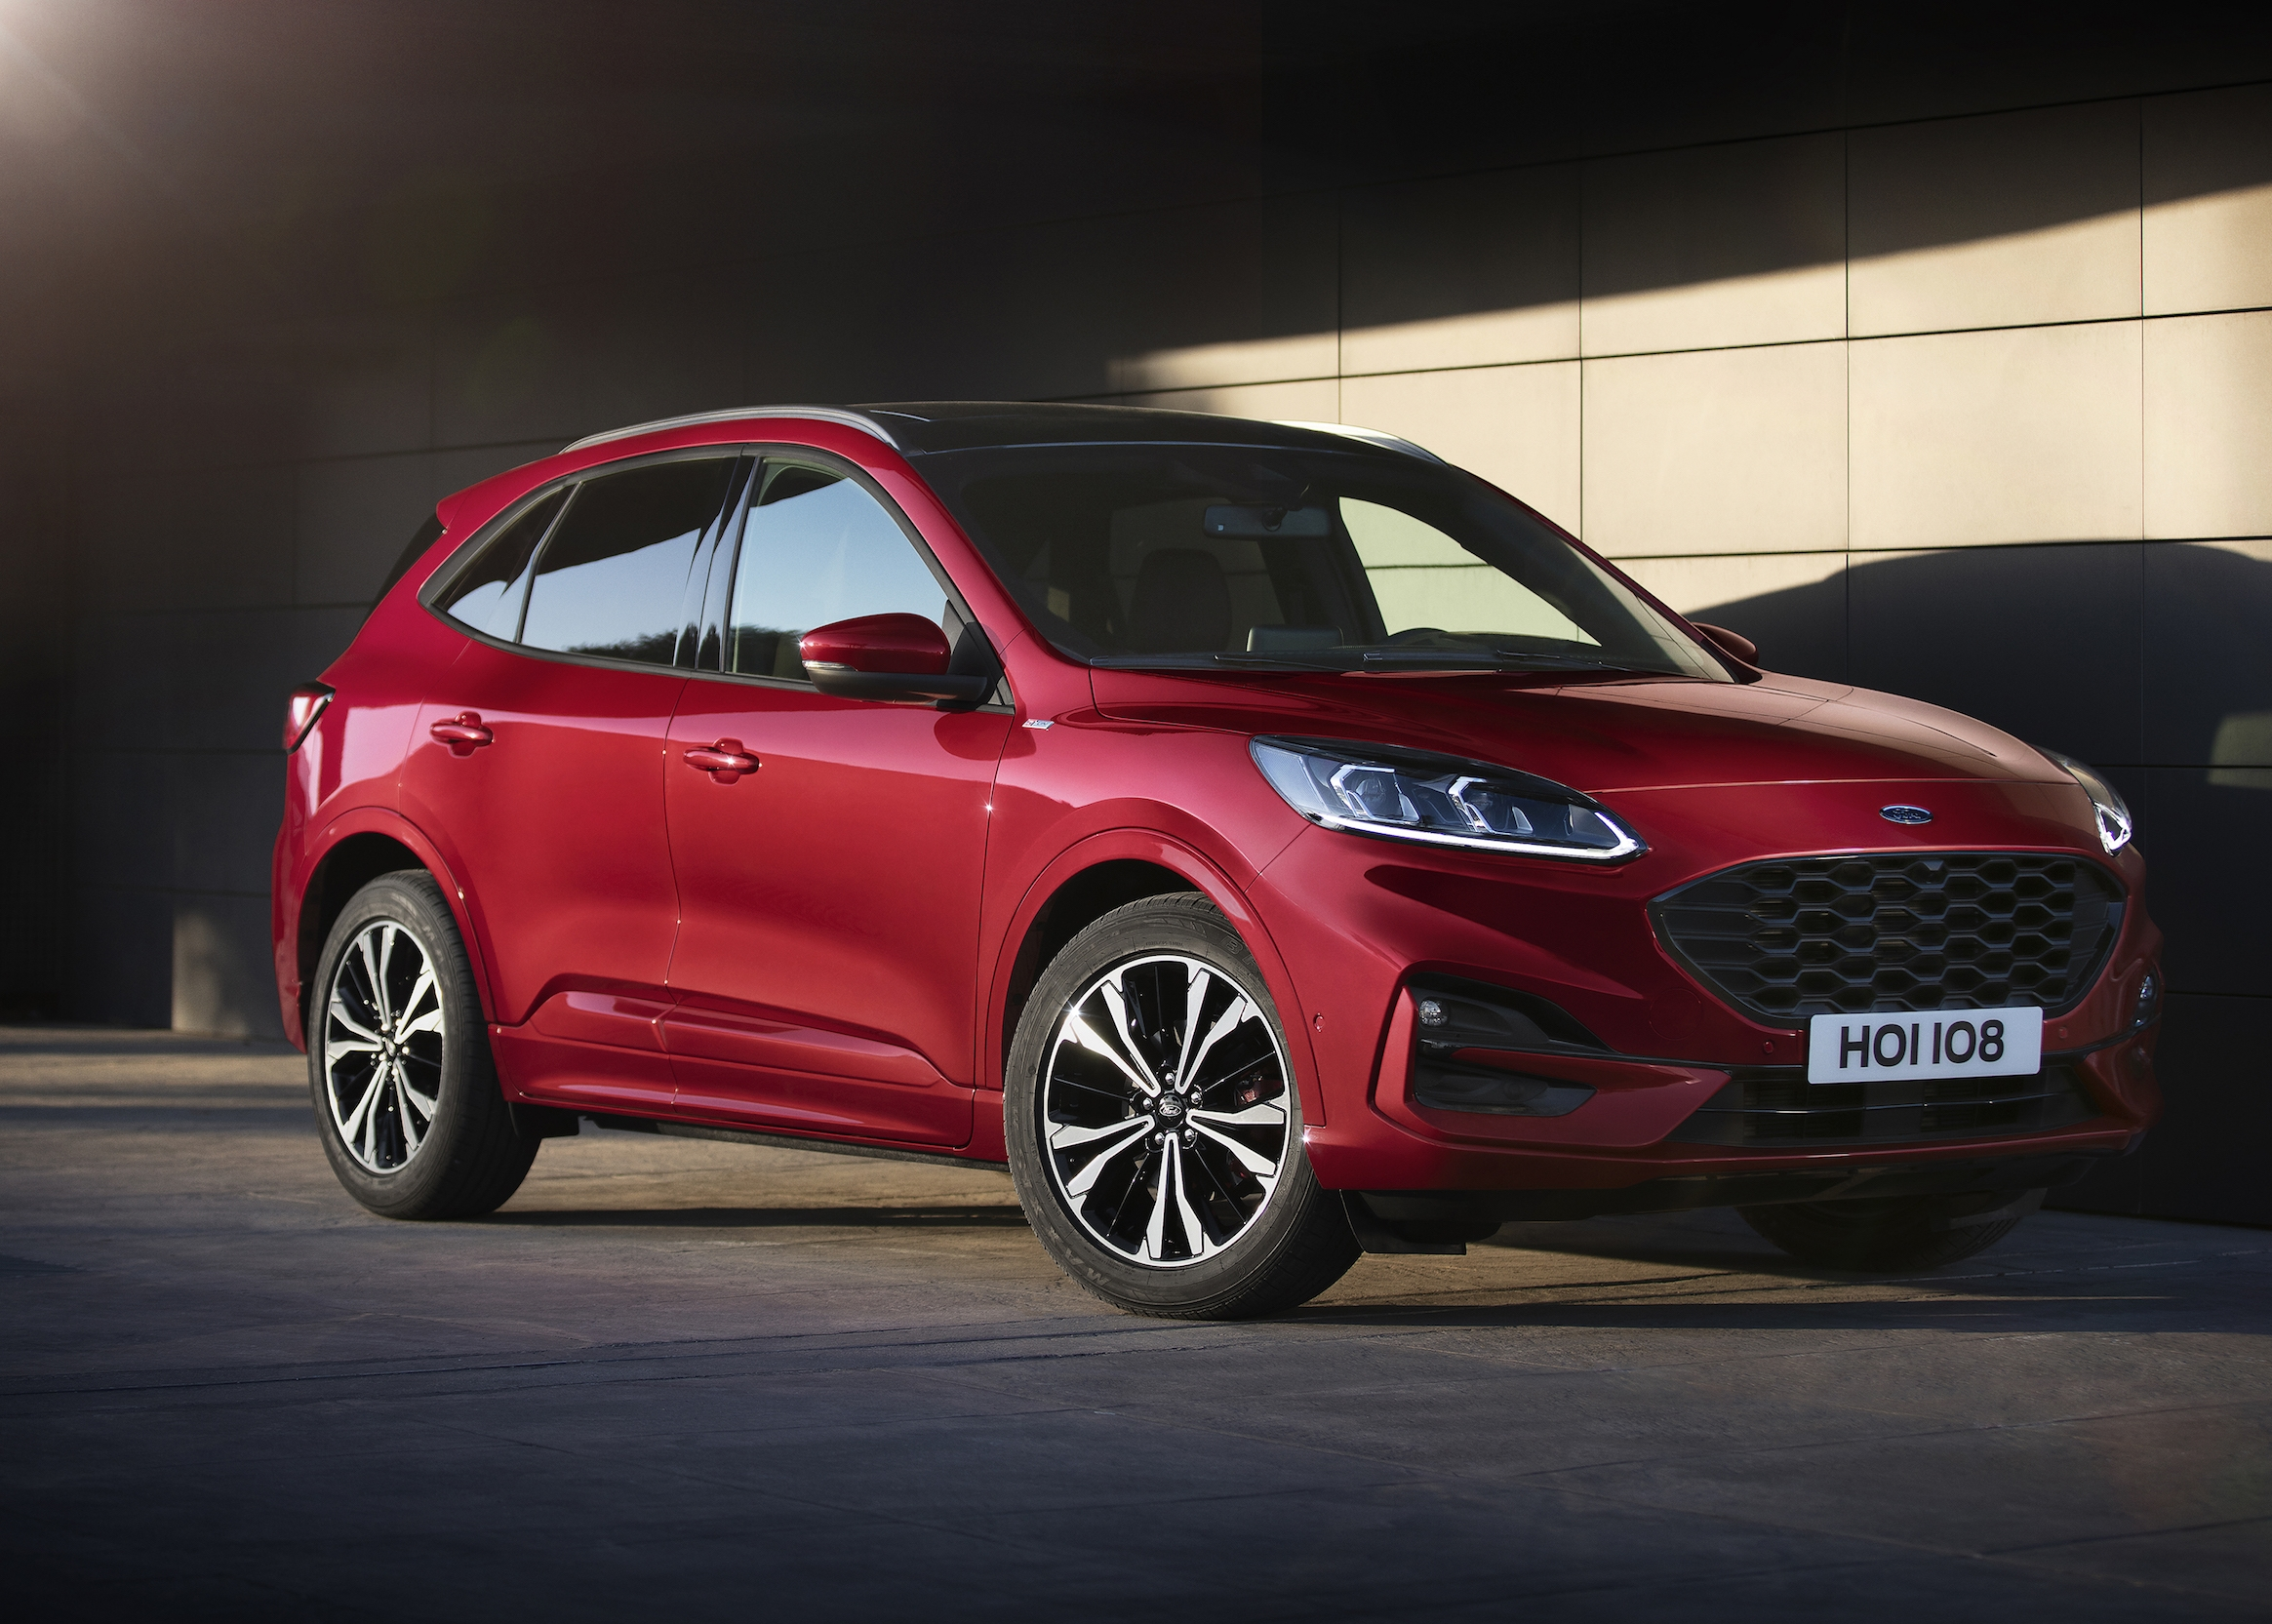 2020 Ford Kuga Revealed With Range Of Electrified Powertrain Options | Top Speed